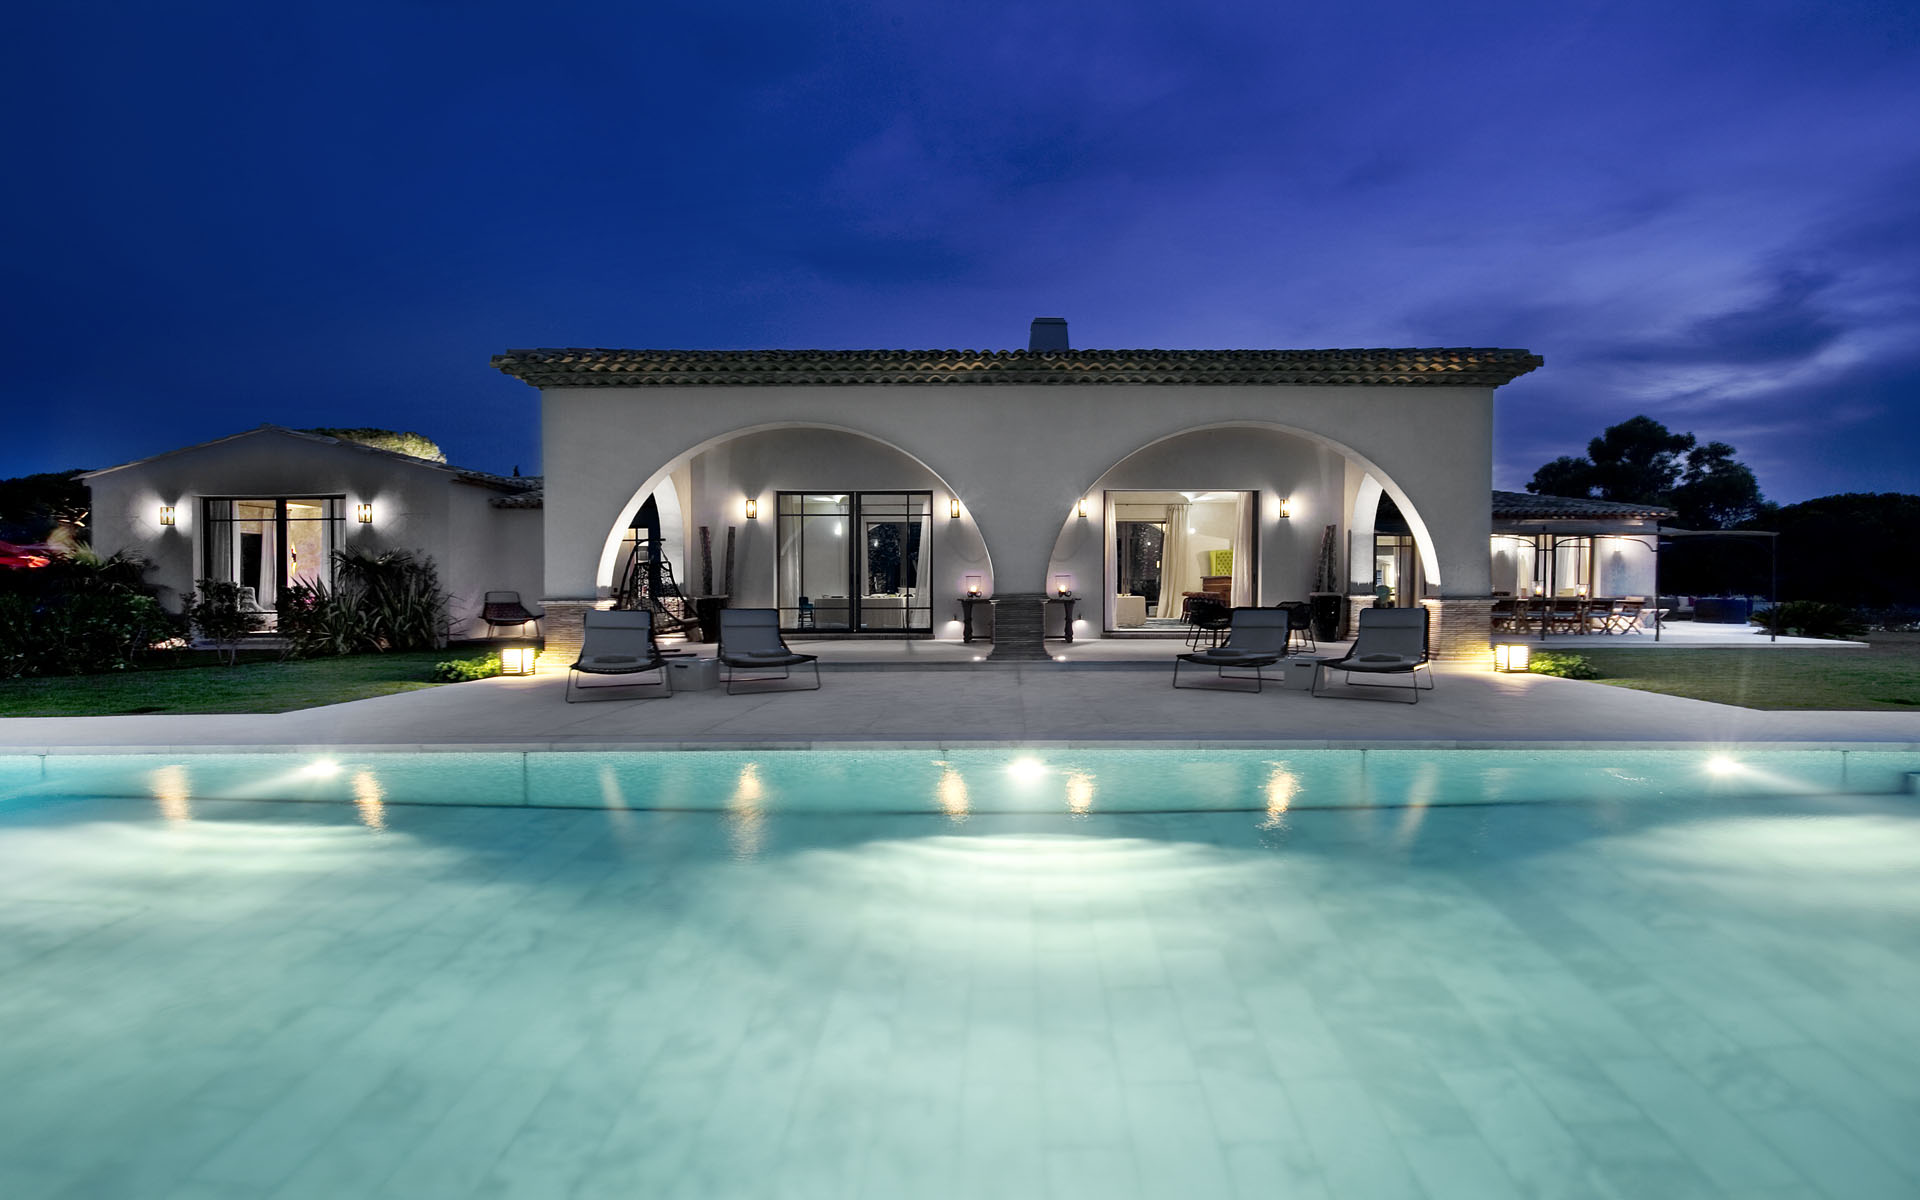 St tropez 39 s luxury villa peninsula 1 for Pool villa design